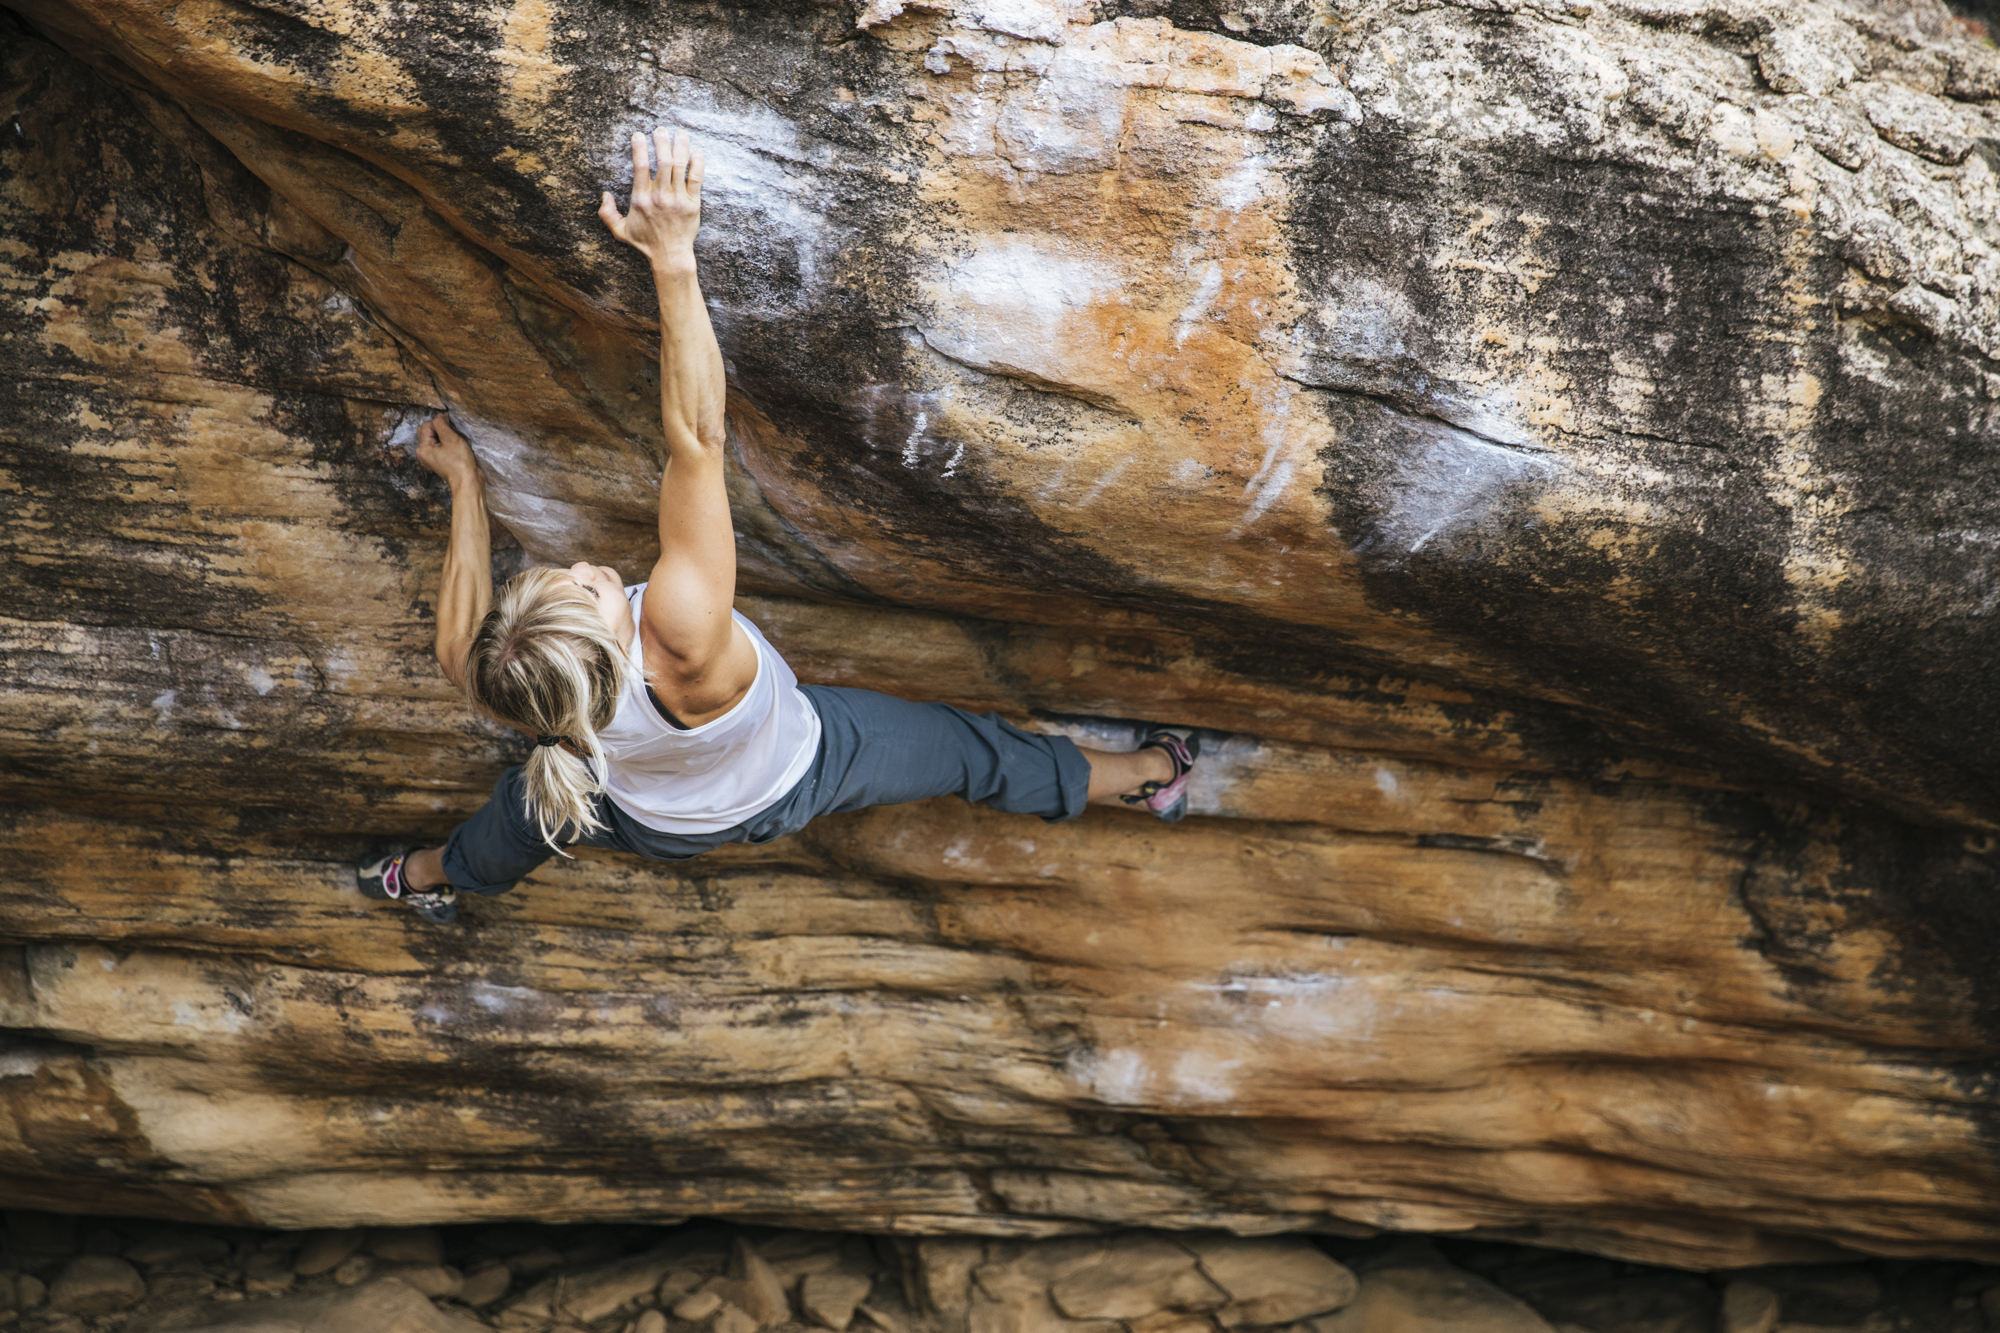 Law and Order, 8A+, Rocklands